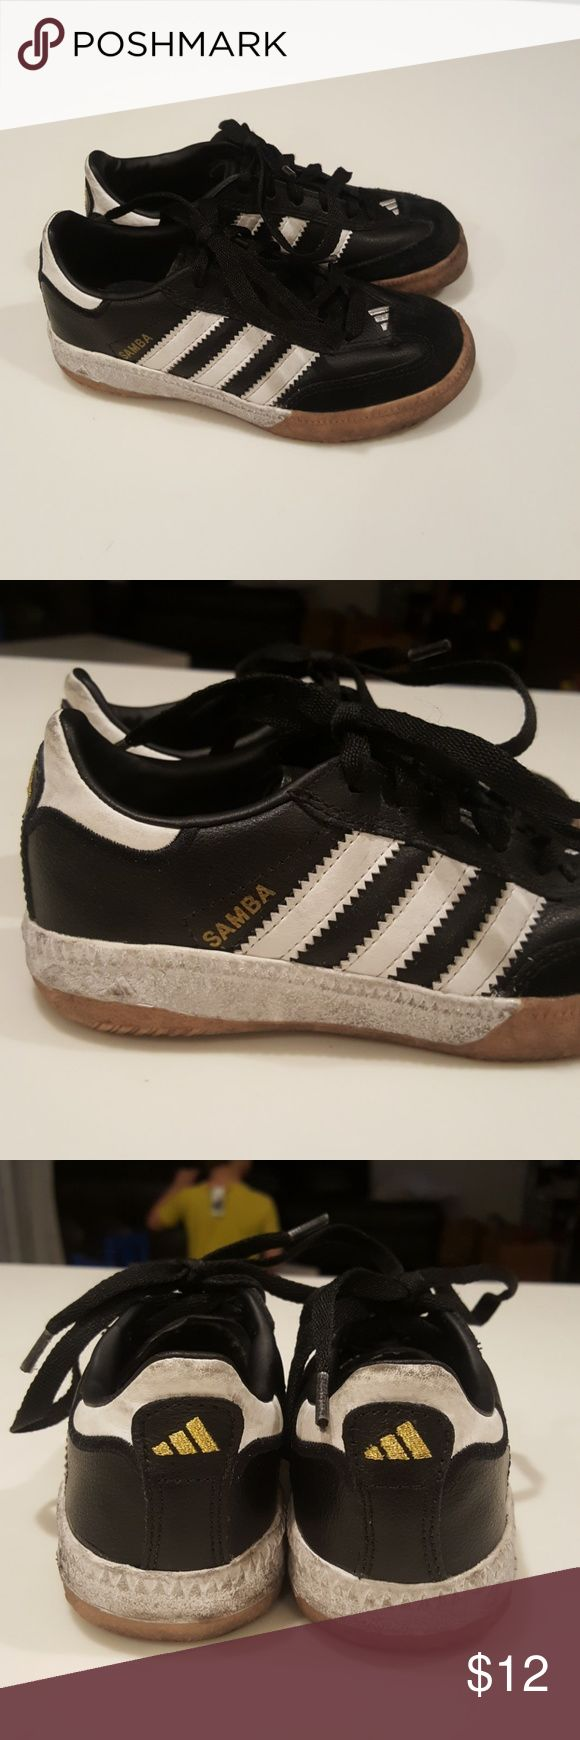 Adidas Samba Sneakers for toddlers Gently used soccer sneakers. adidas Shoes Sneakers